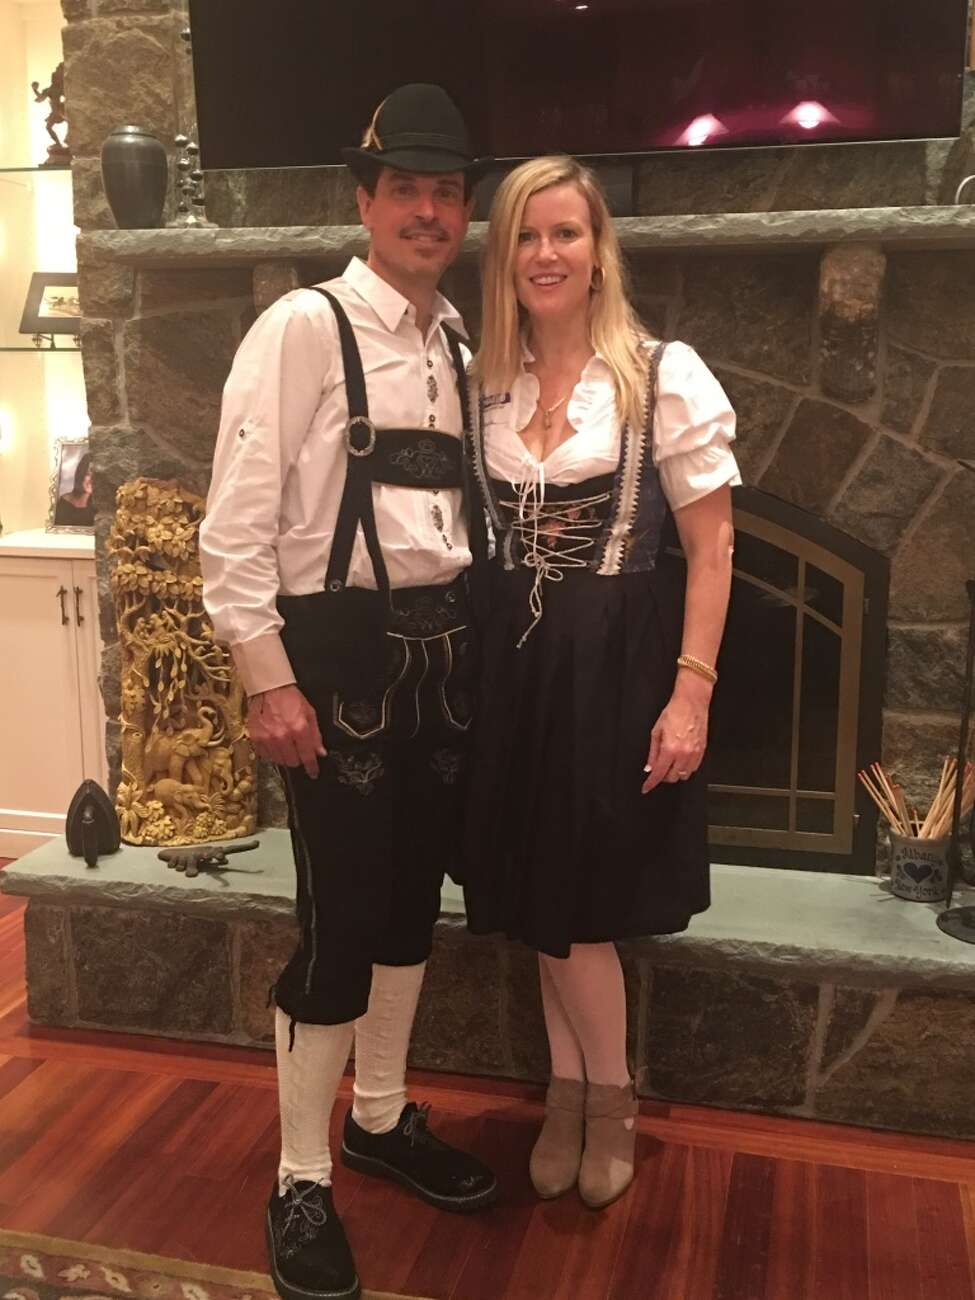 1. I grew up in Pittsburgh and was valedictorian of my high school class of 766 students. I graduated Phi Beta Kappa from the University of Pittsburgh then did a semester in Germany and celebrated with an annual Oktoberfest party.